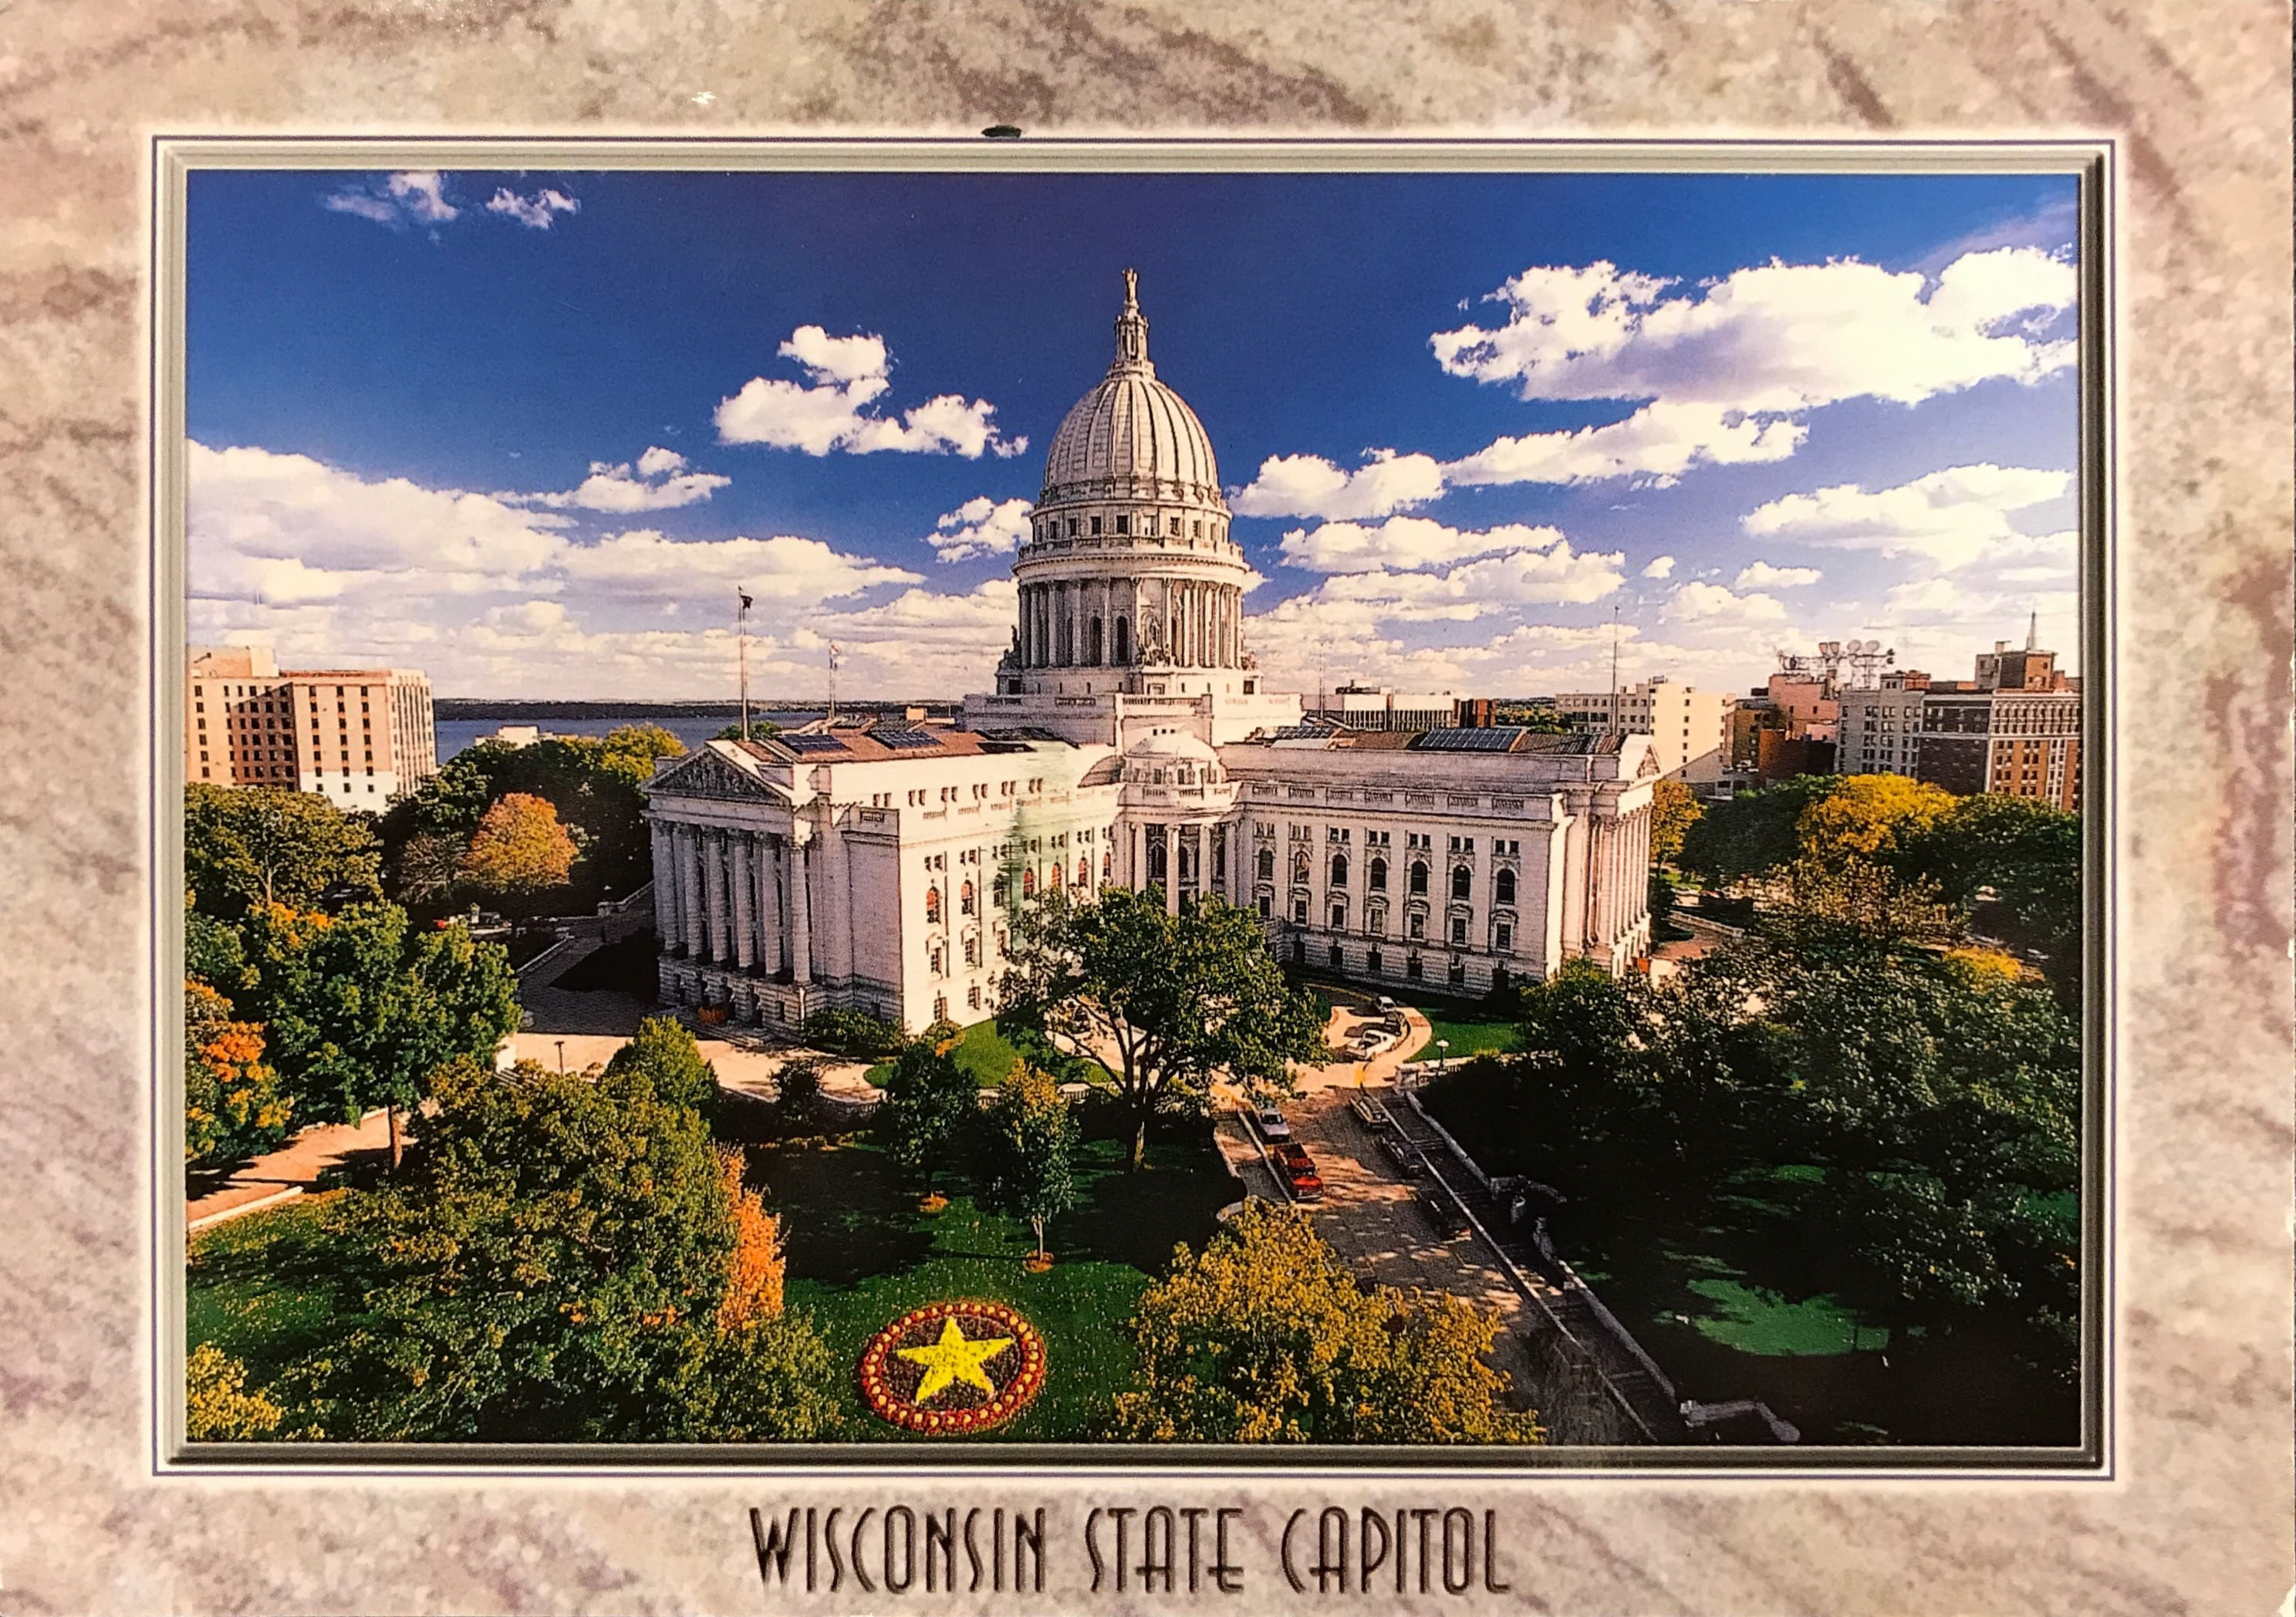 Cover of postcard from Jean DeMerit (UW–Madison, USA)